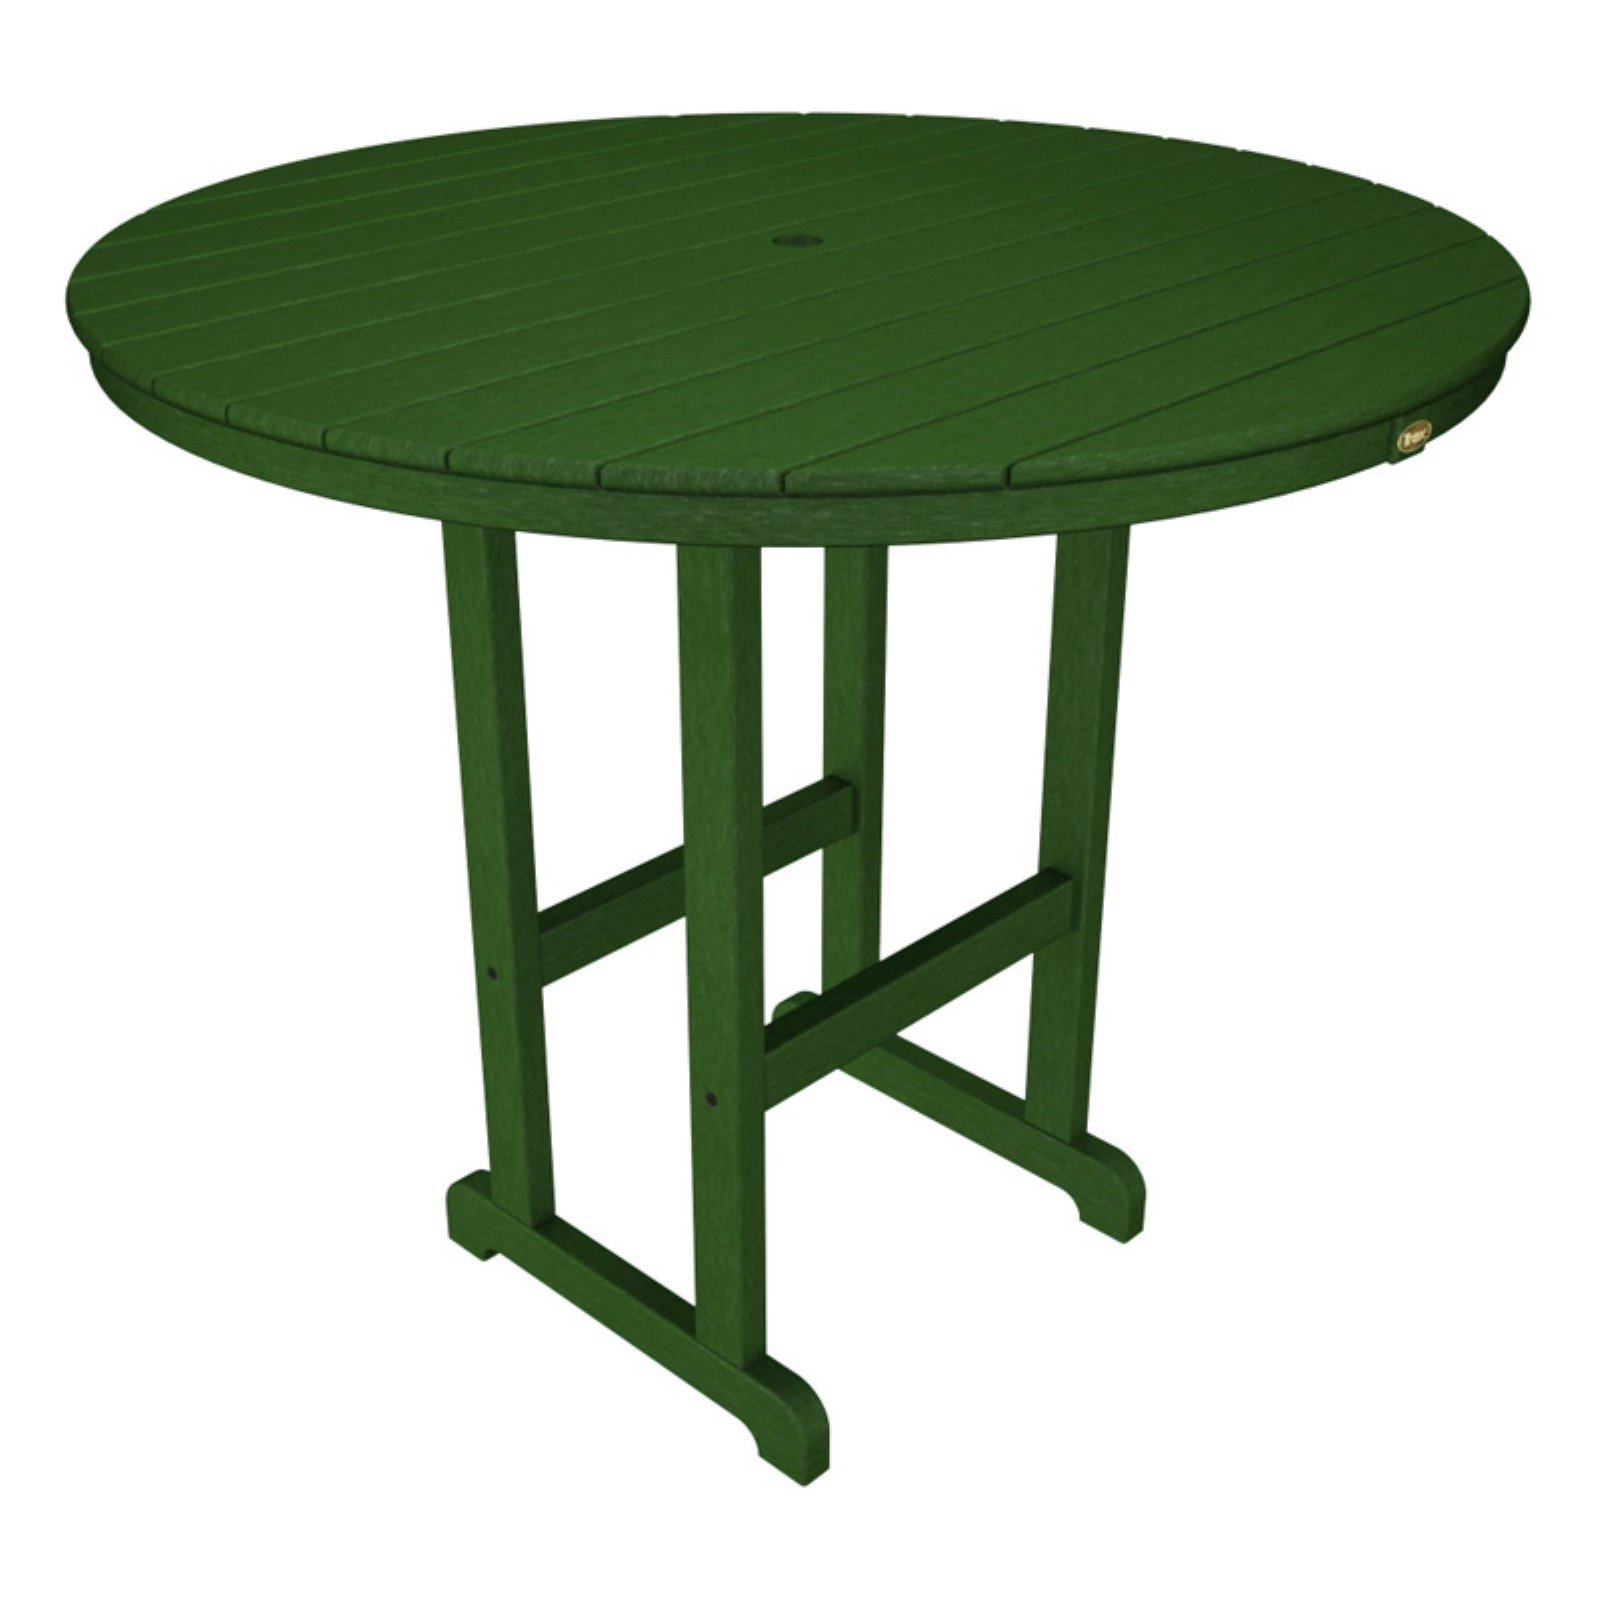 Trex Outdoor Furniture Recycled Plastic Monterey Bay Round Bar Height Table    Walmart.com